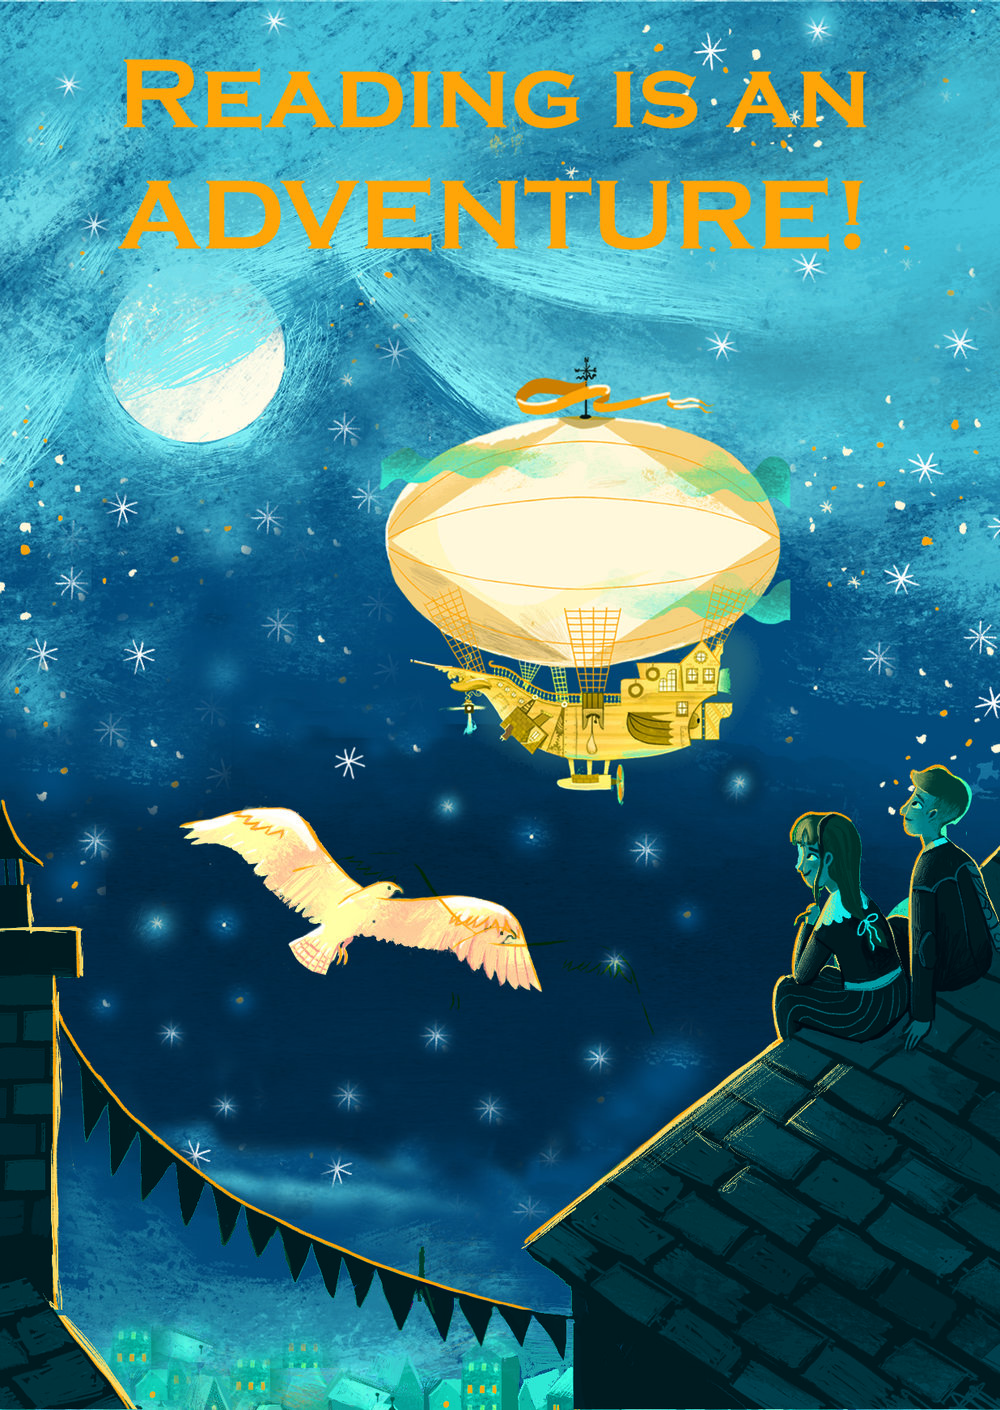 Copy of Reading is an Adventure poster